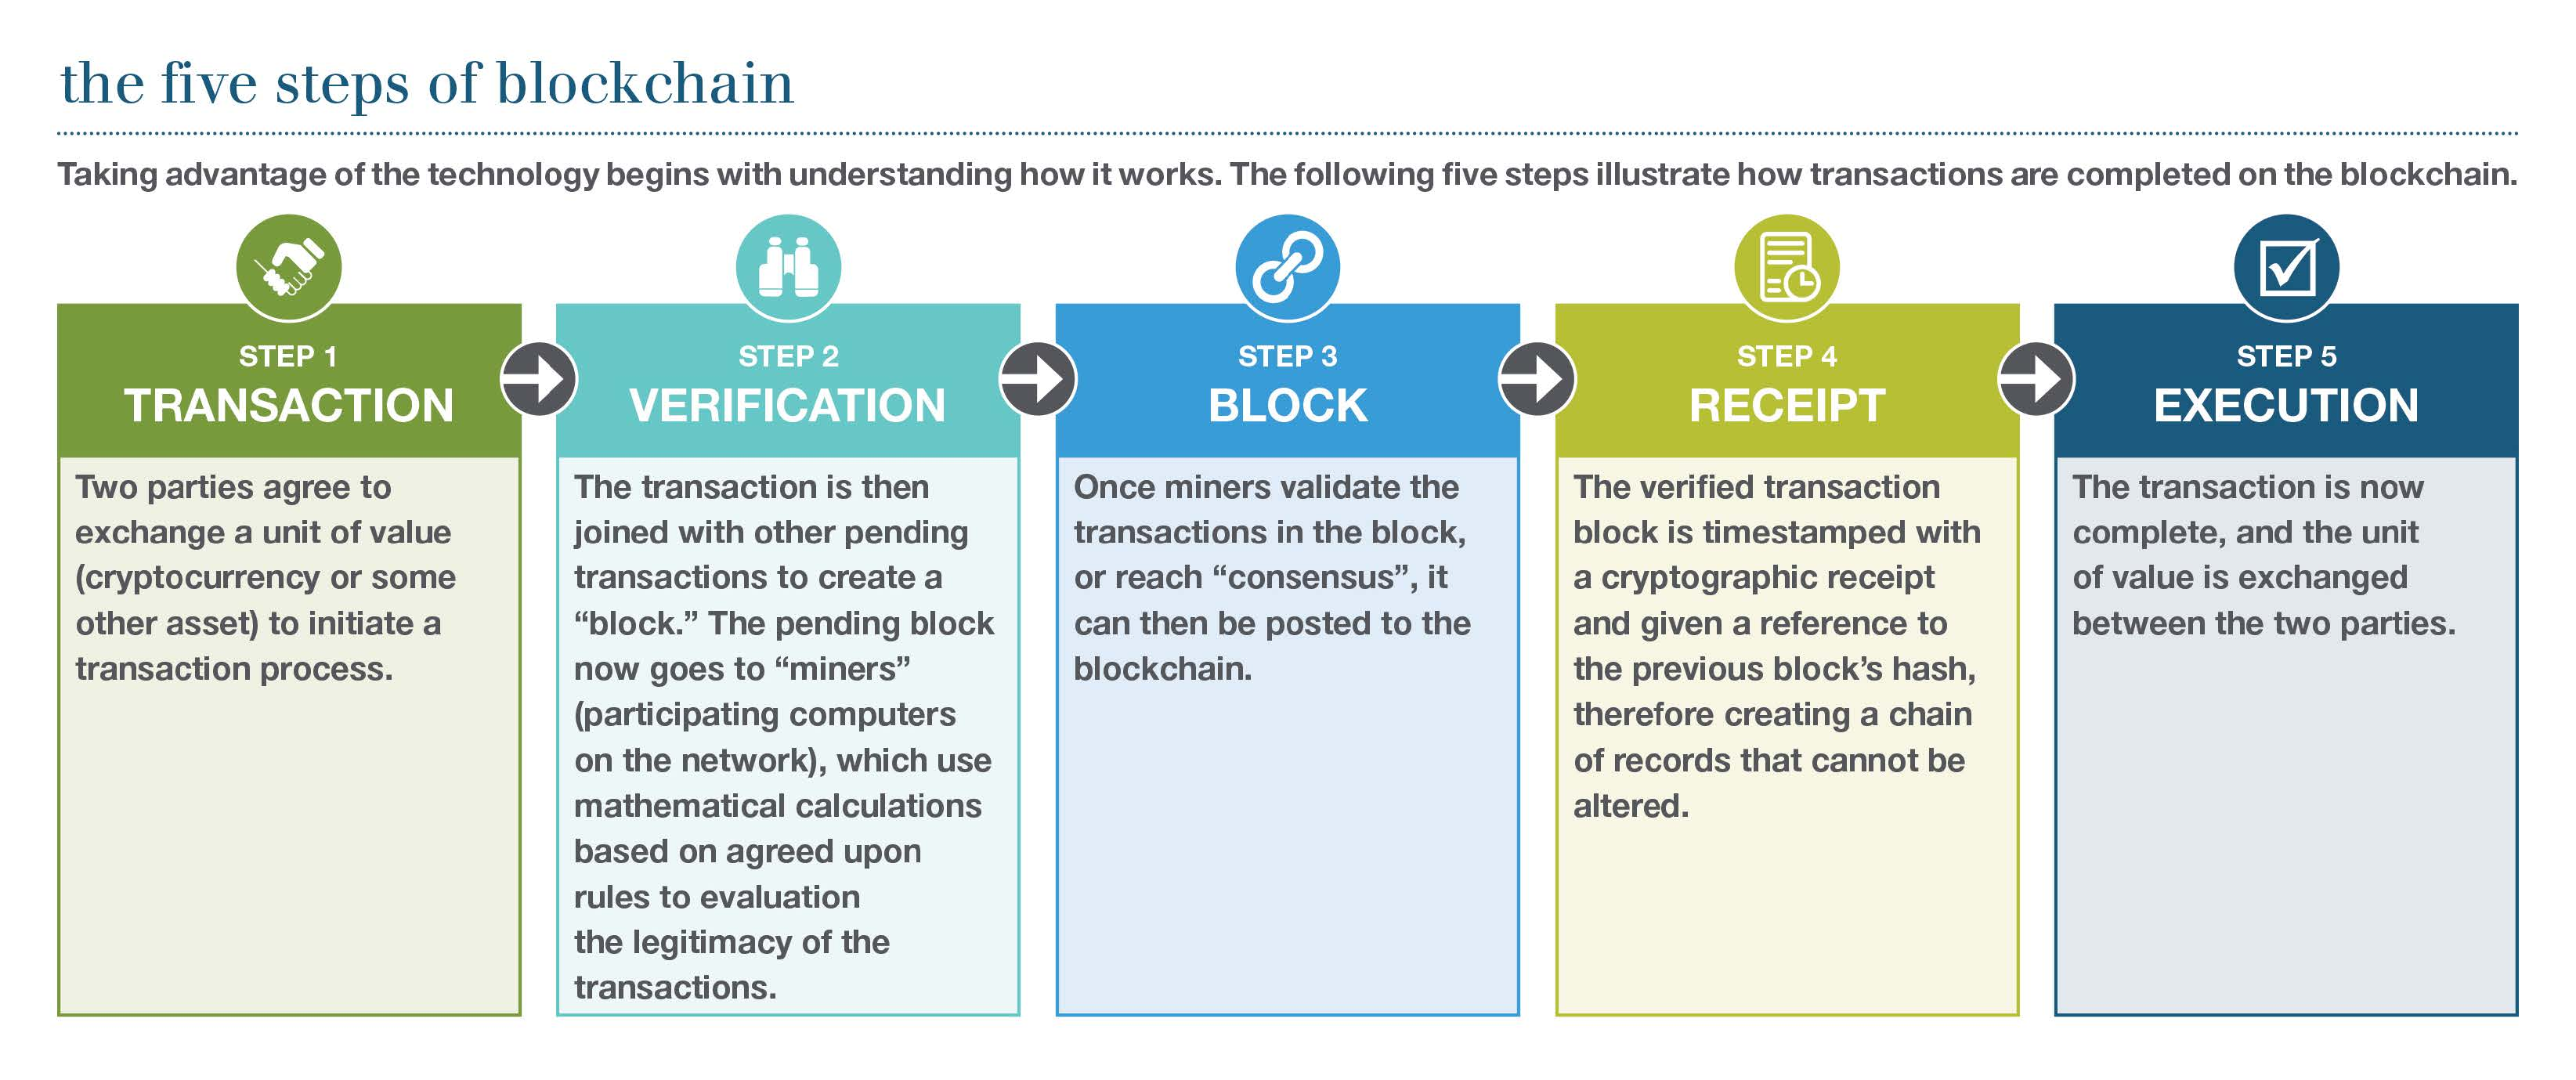 Illustrated guide to the steps of blockchain